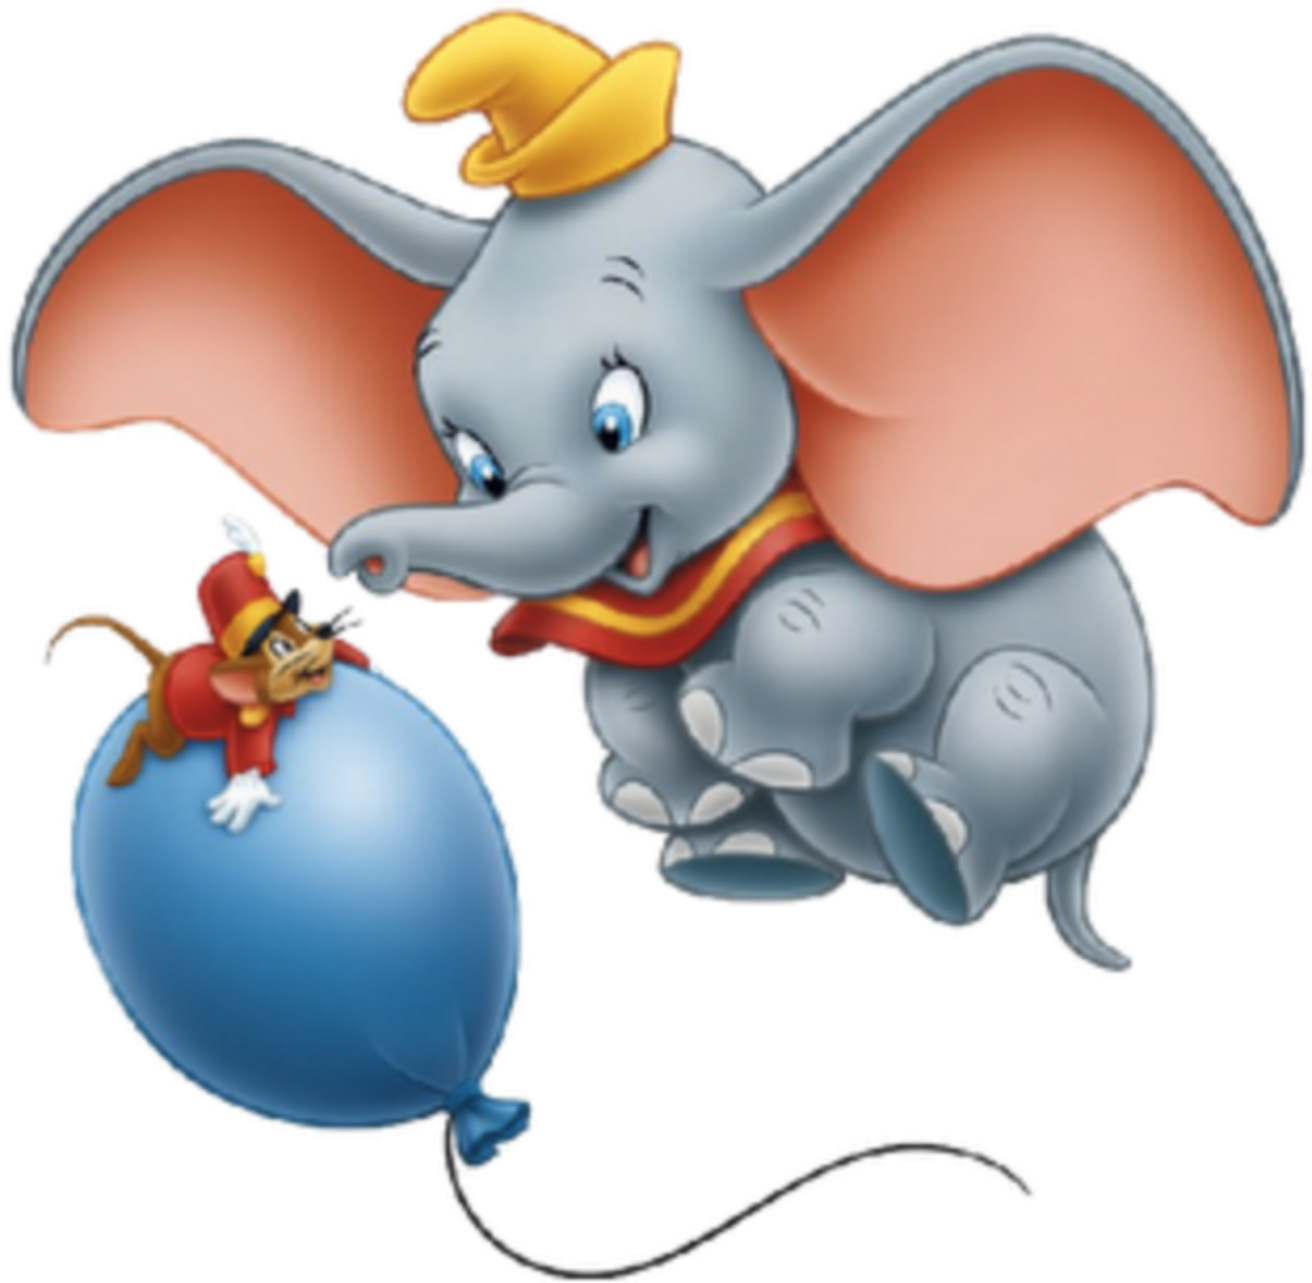 This is a picture of Lucrative Dumbo the Elephant Images